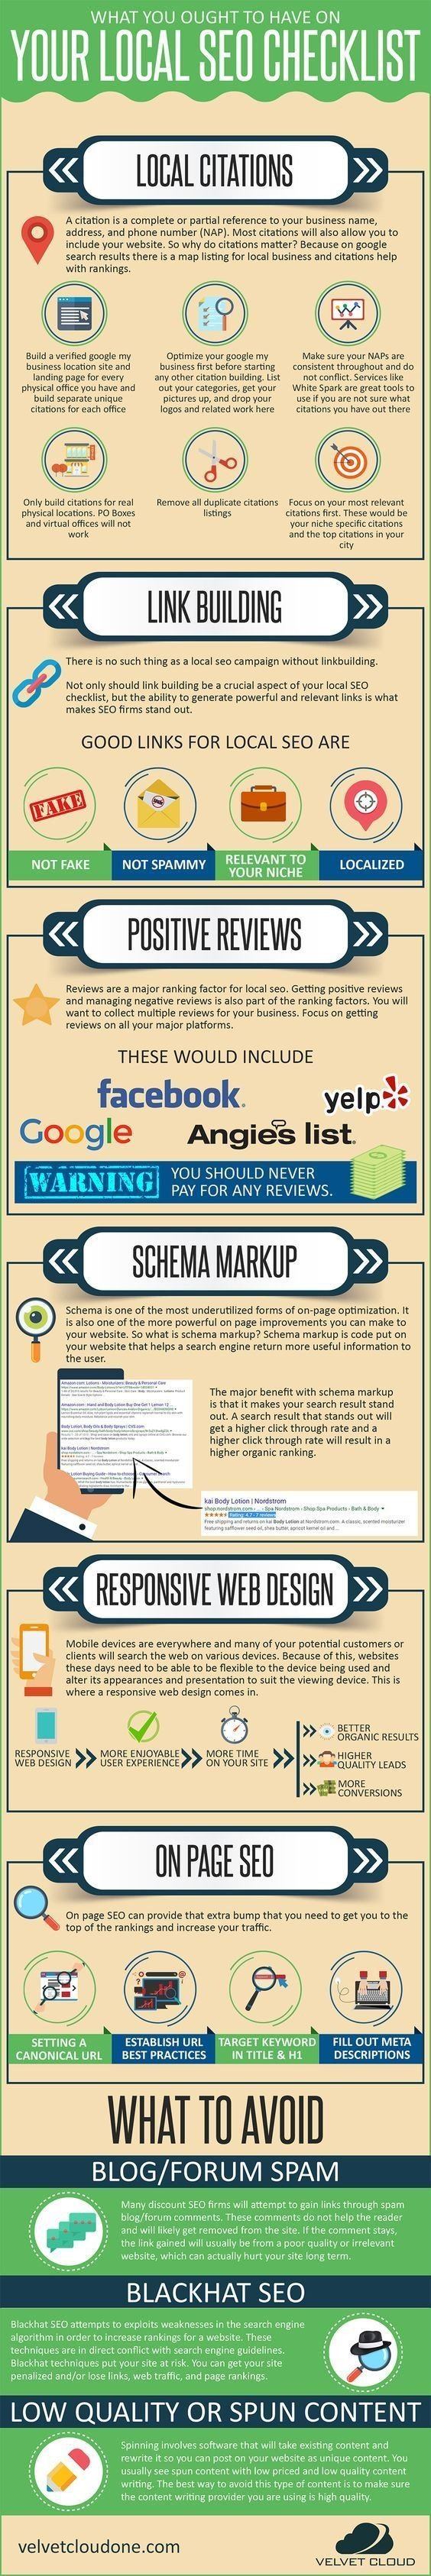 Your local #SEO checklist #Social_Media #Marketing #Infographic